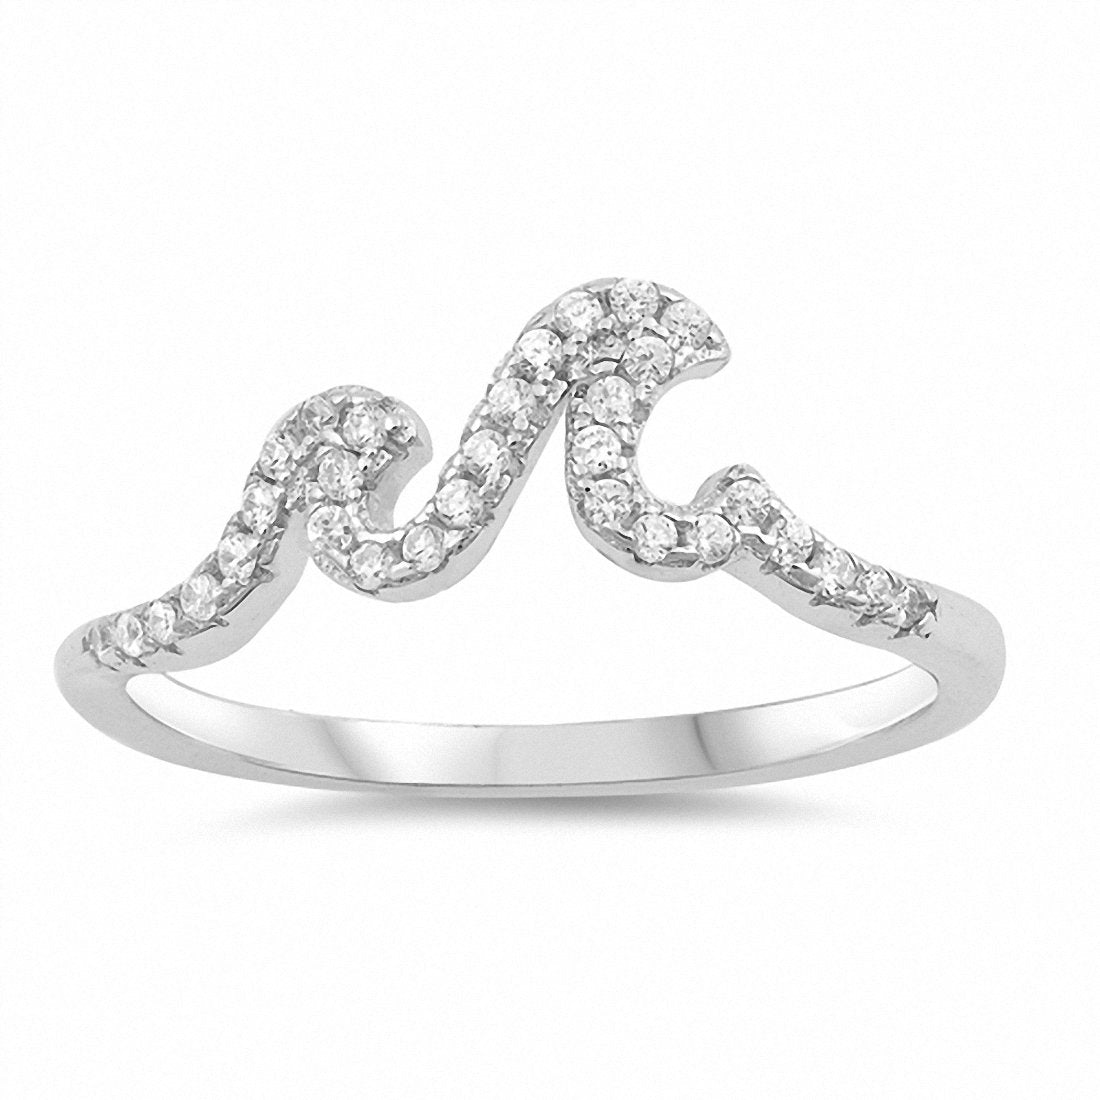 Little Small Wave Ring Round Cubic Zirconia 925 Sterling Silver Choose Color